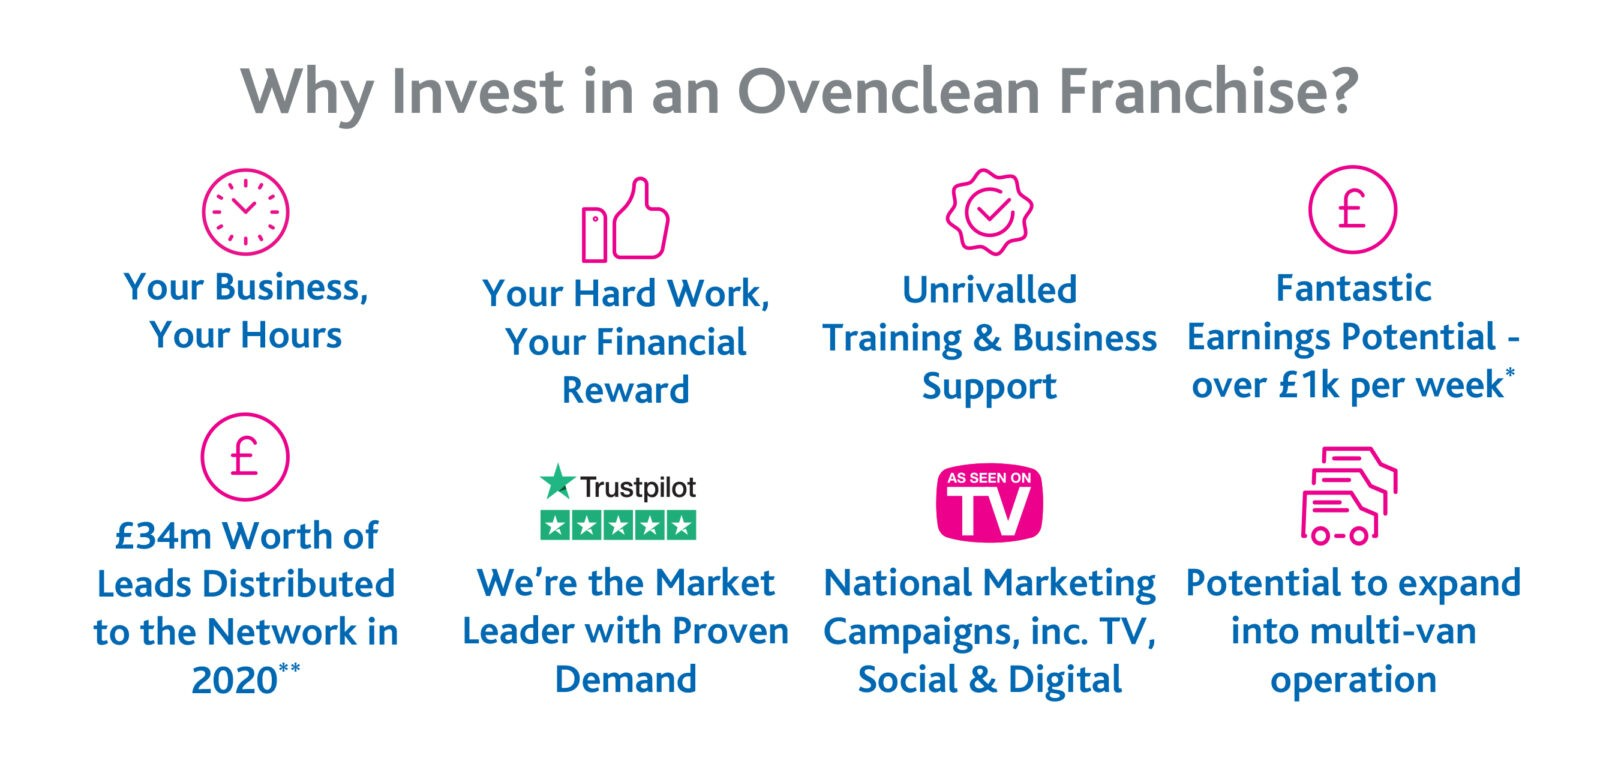 Ovenclean Image